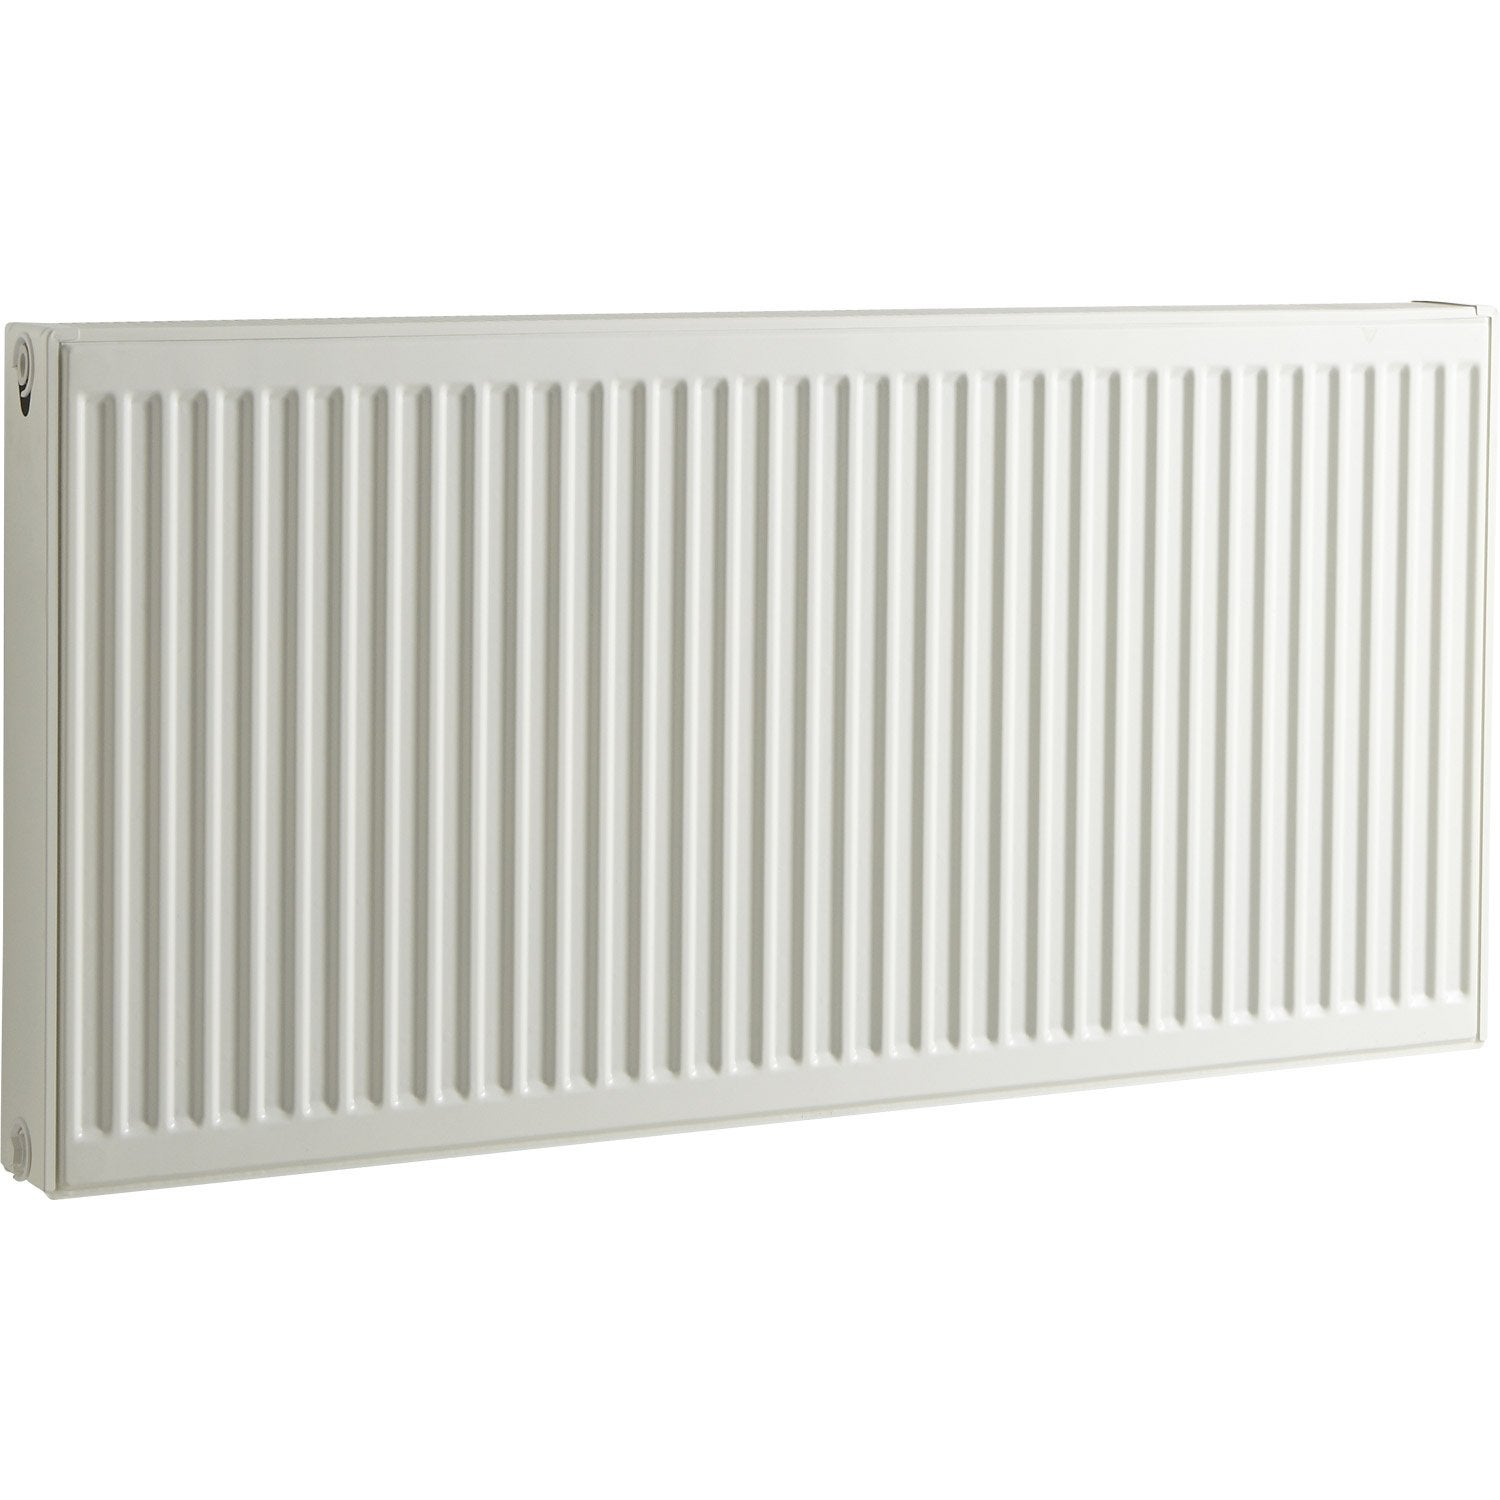 radiateur chauffage central blanc cm 2397 w. Black Bedroom Furniture Sets. Home Design Ideas